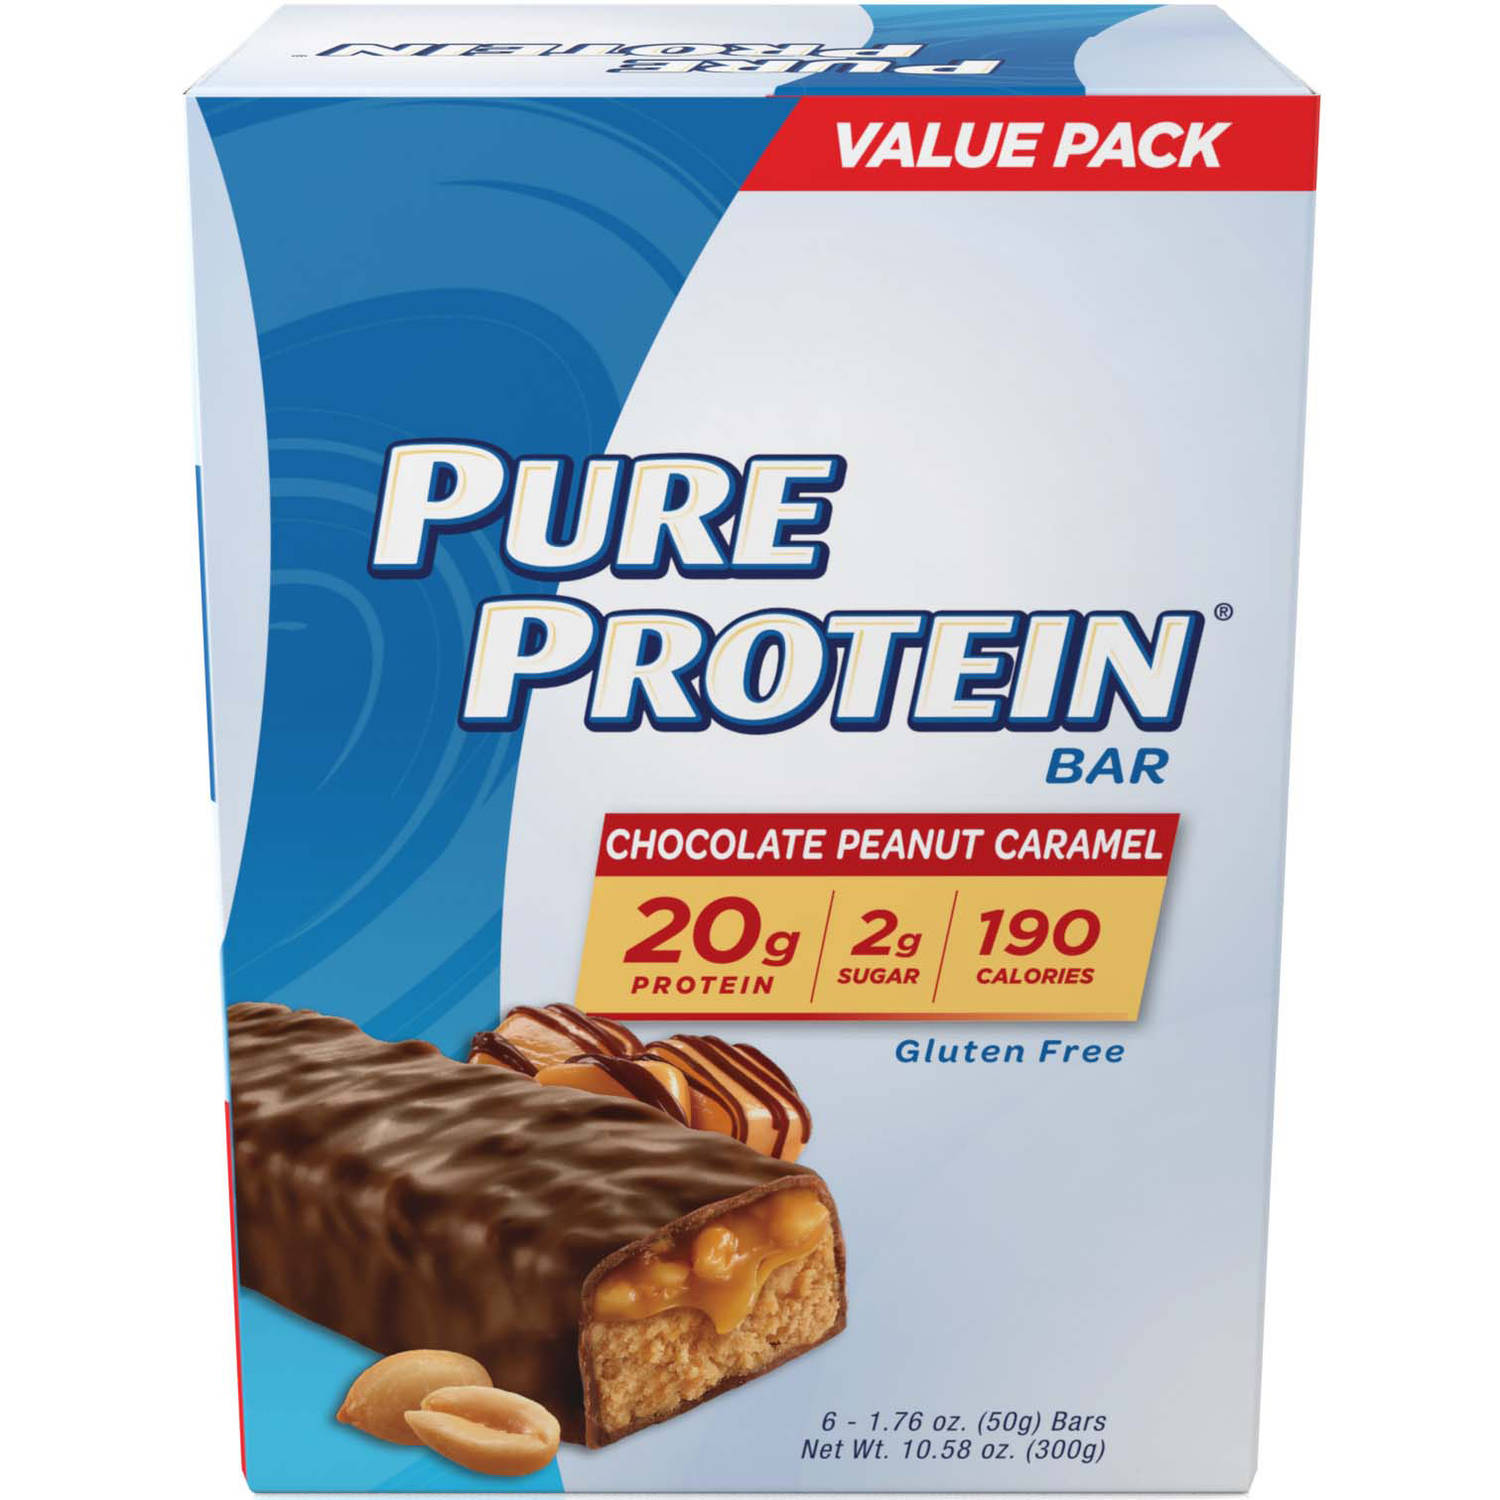 Pure Protein Revolution High Protein Triple Layer Chocolate Peanut Caramel Bars, 1.76 oz, 6 count